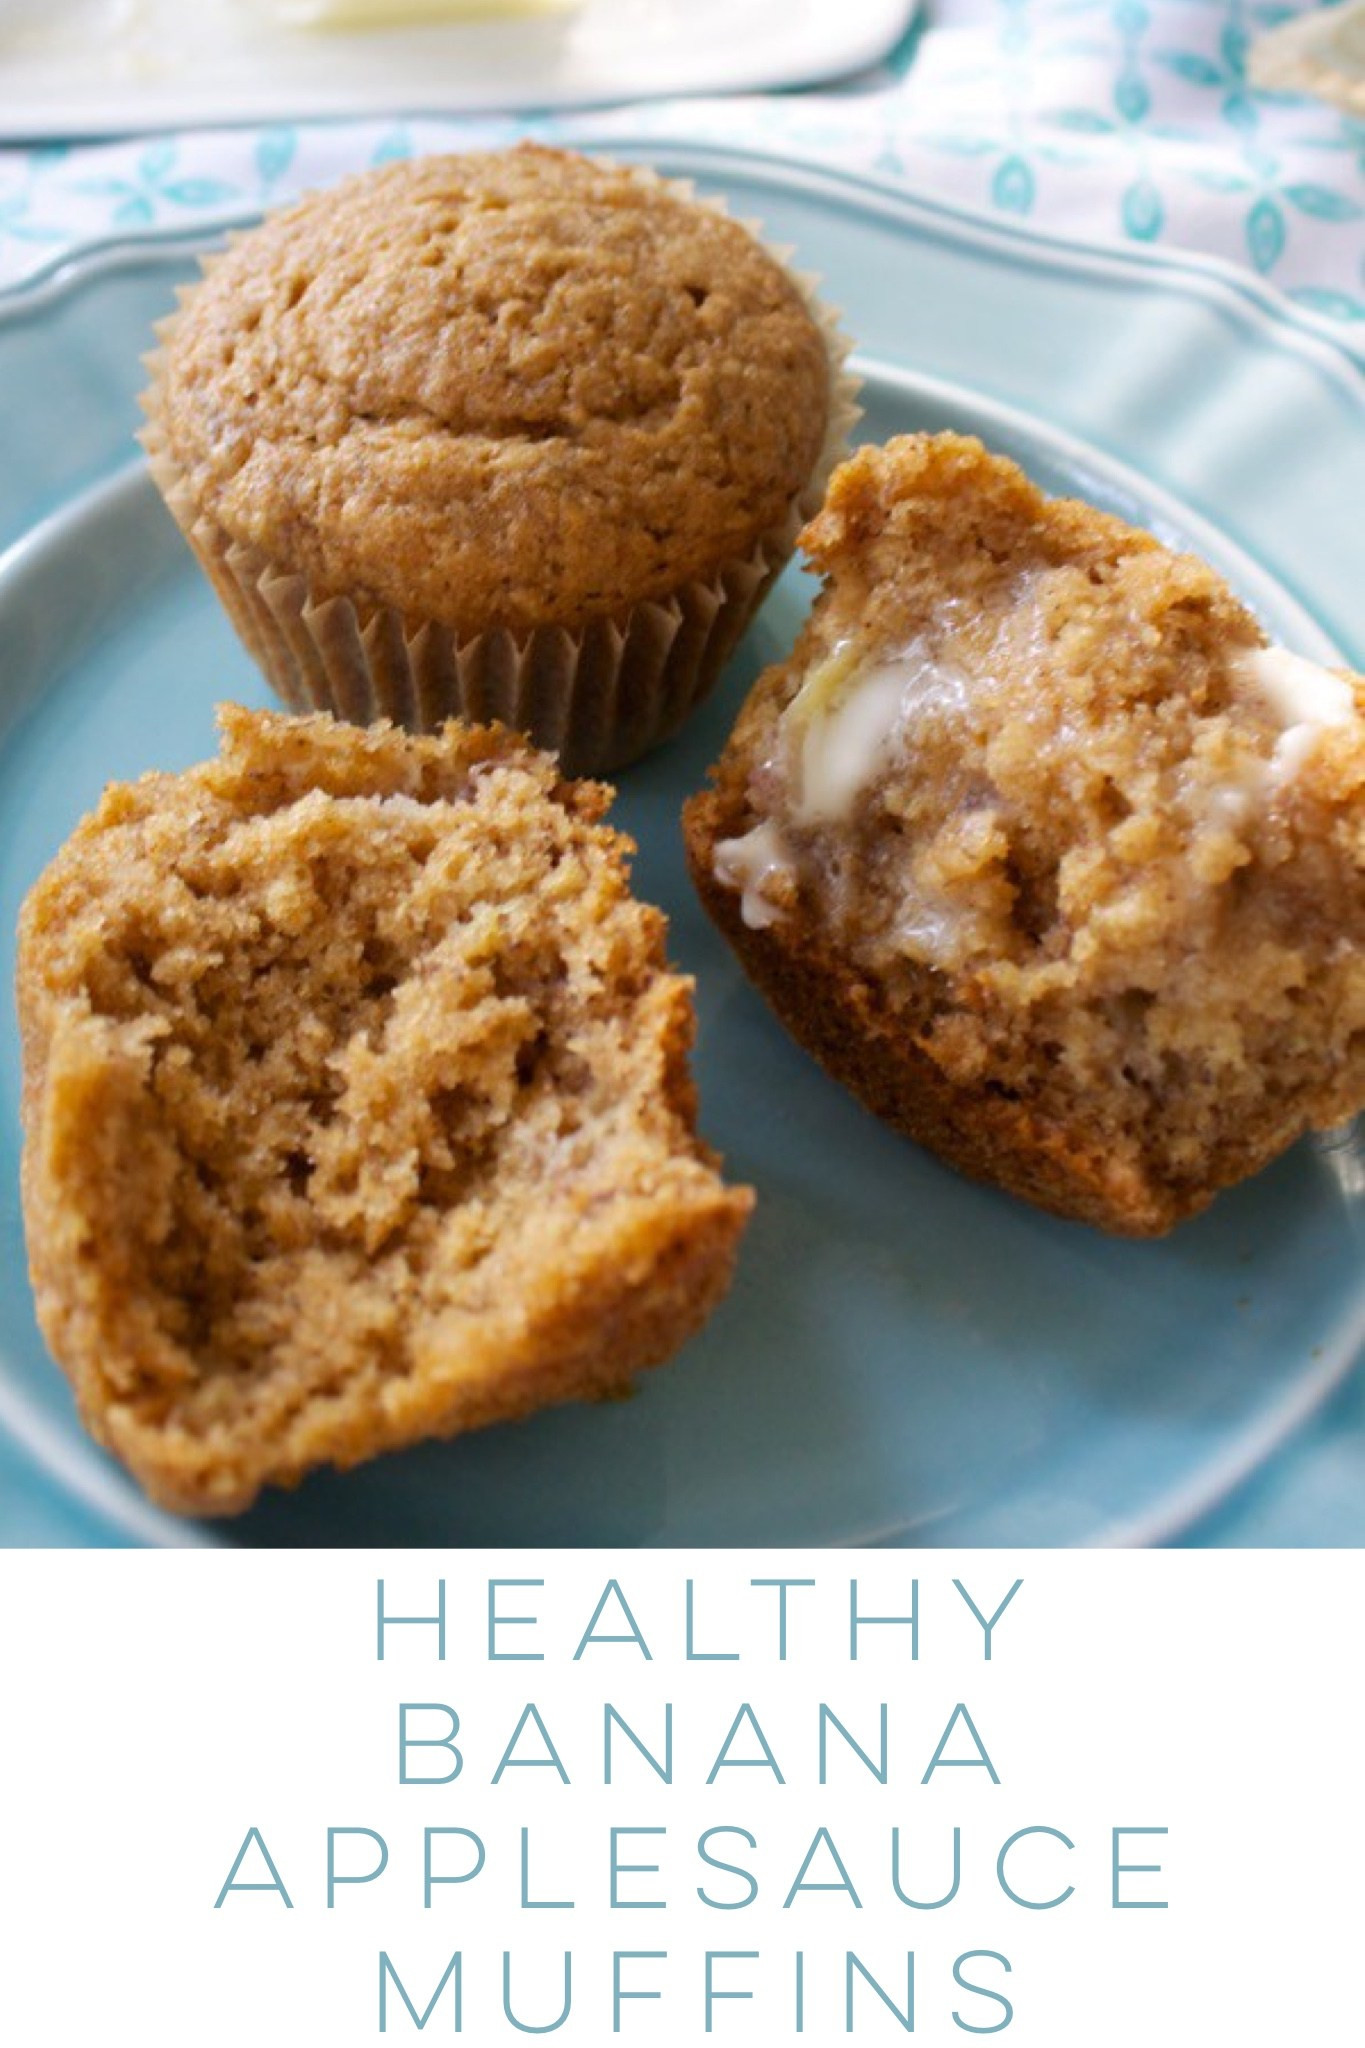 Healthy Oatmeal Banana Muffins With Applesauce  low fat banana muffins with applesauce